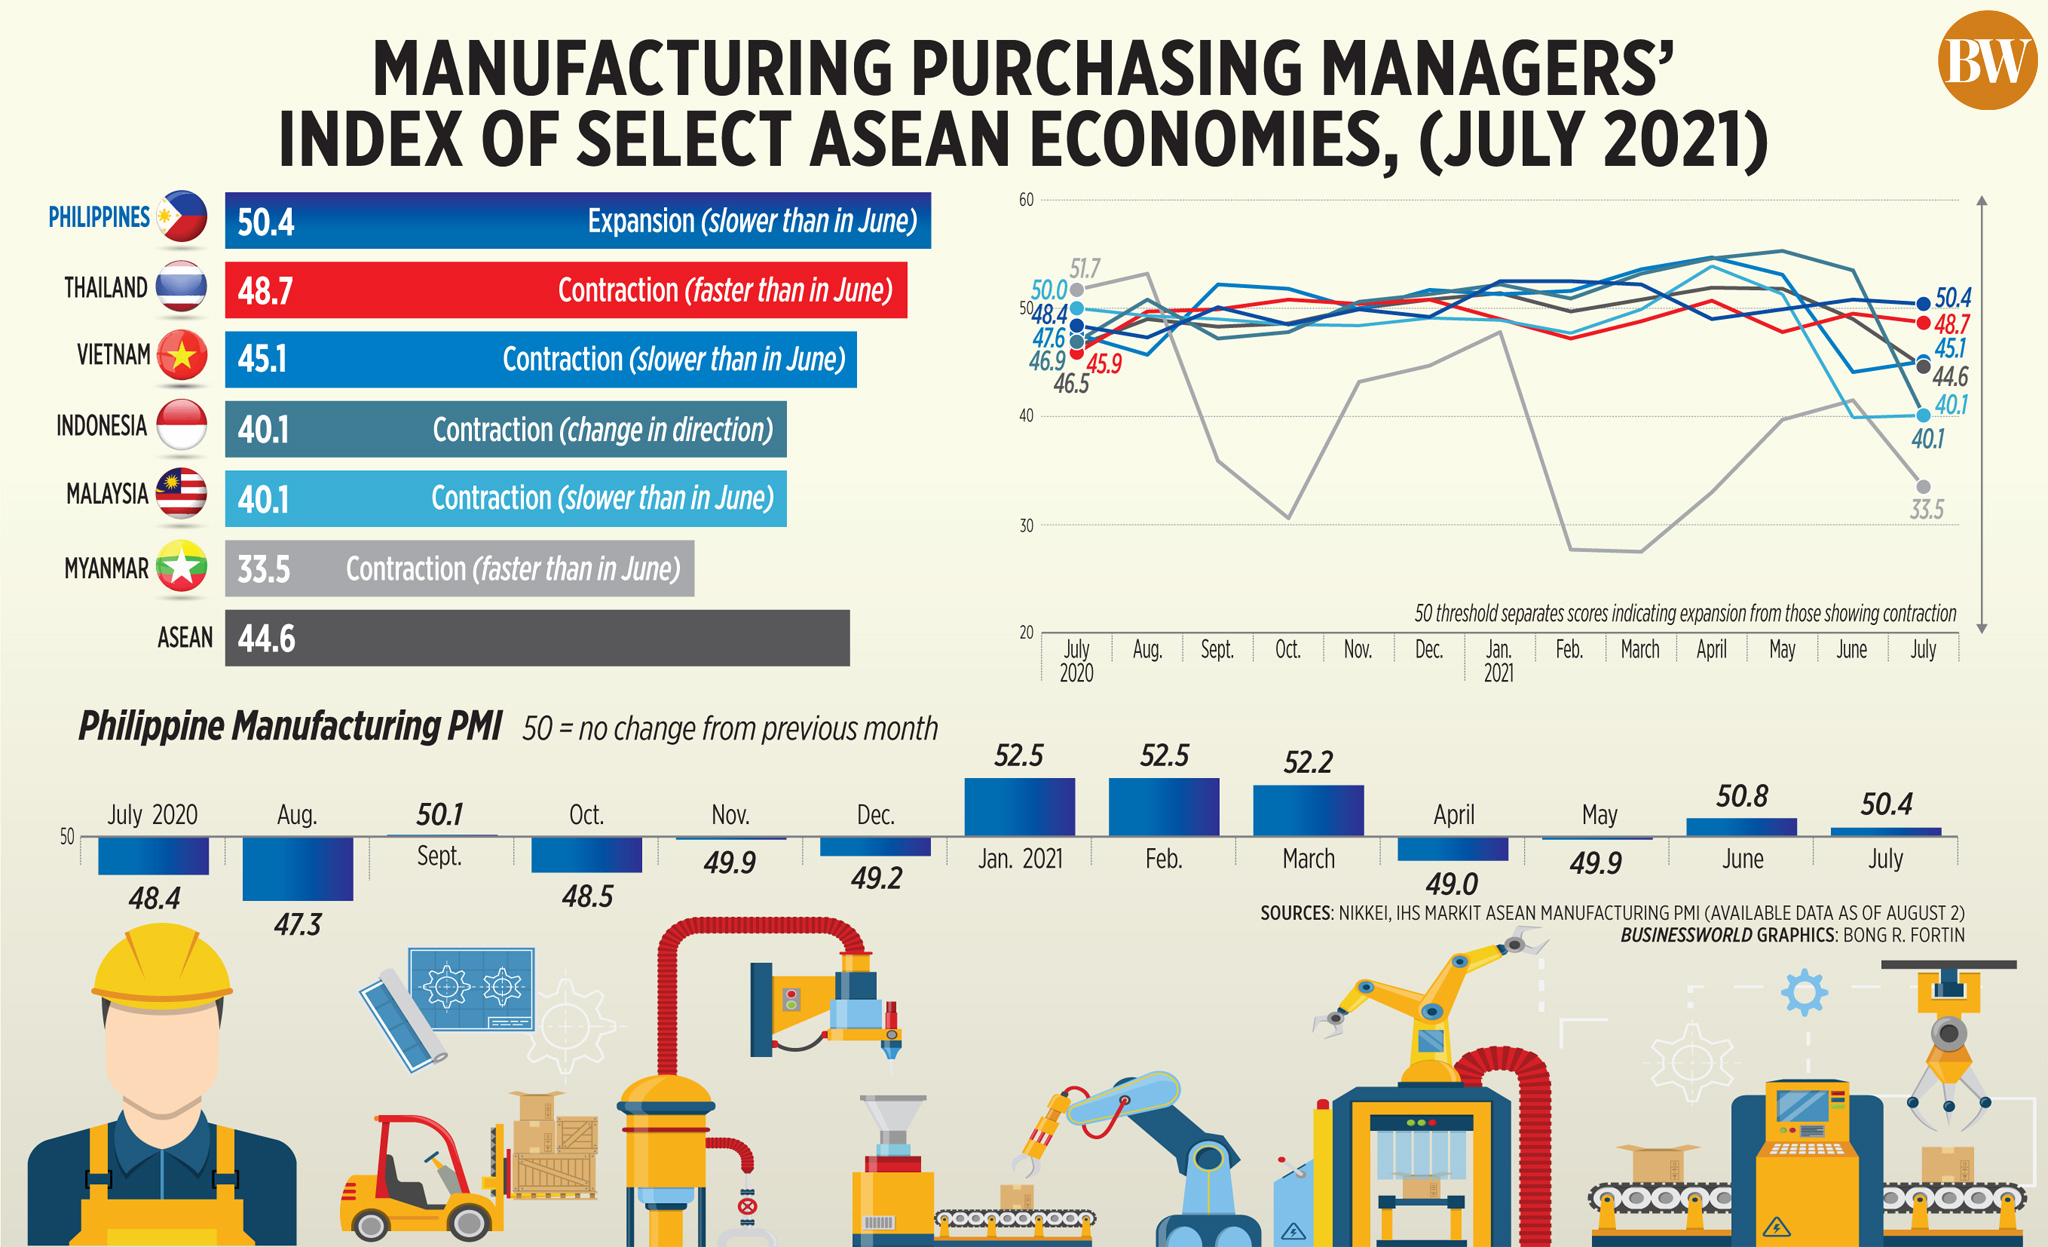 Manufacturing Purchasing Managers' Index of Select ASEAN Economies, (July 2021)